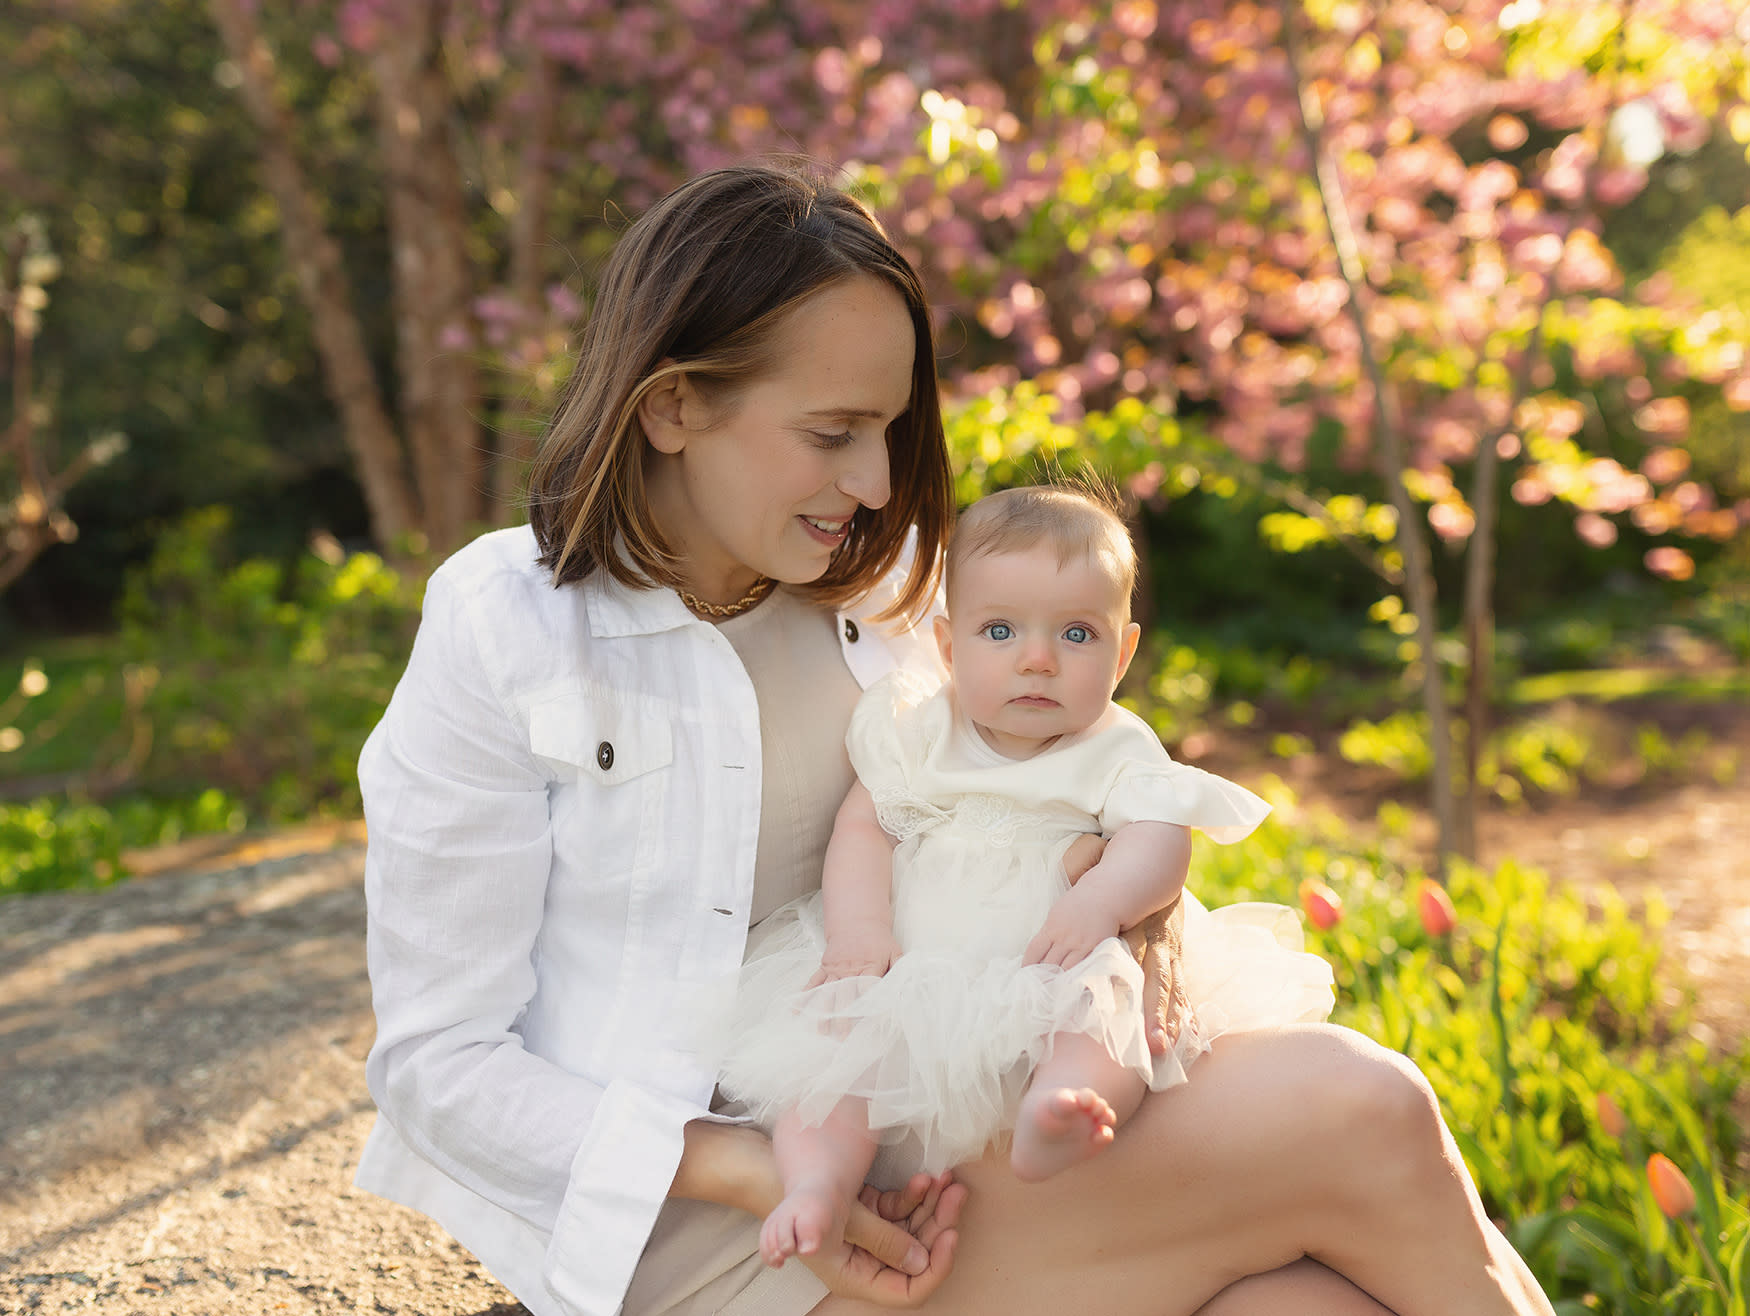 Infant on mother's lap